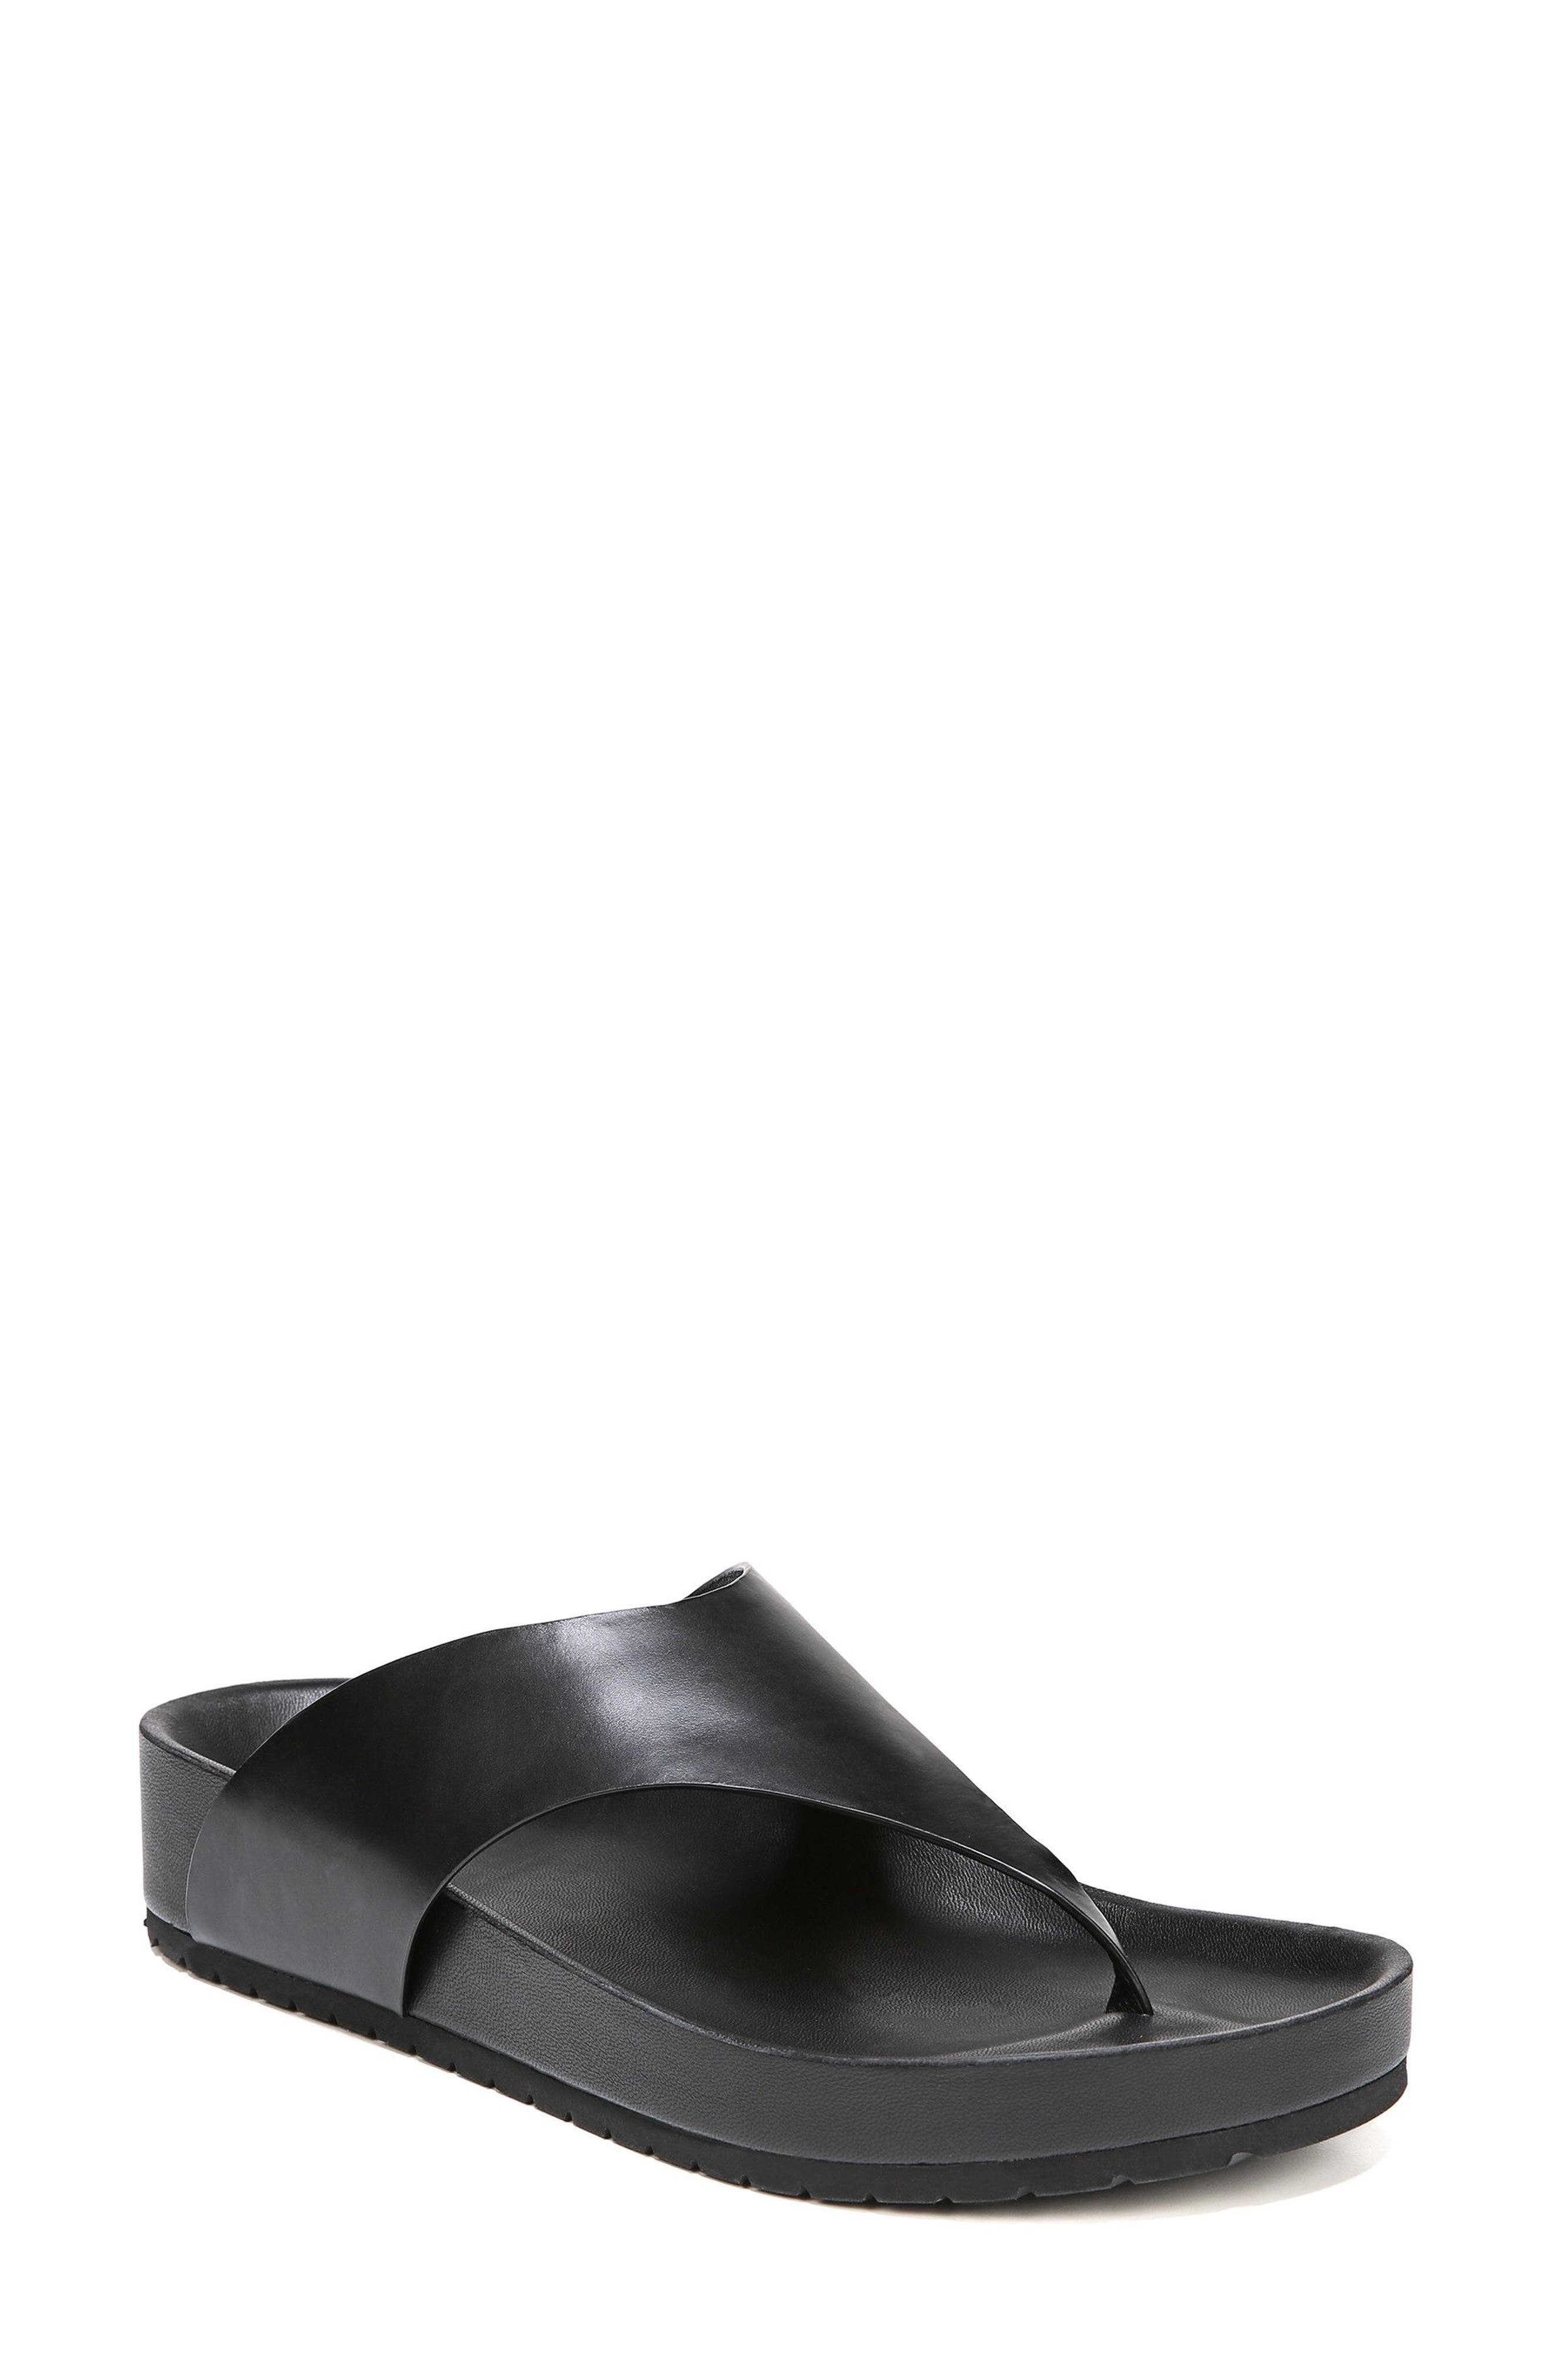 Padma Platform Sandal,                             Main thumbnail 1, color,                             BLACK